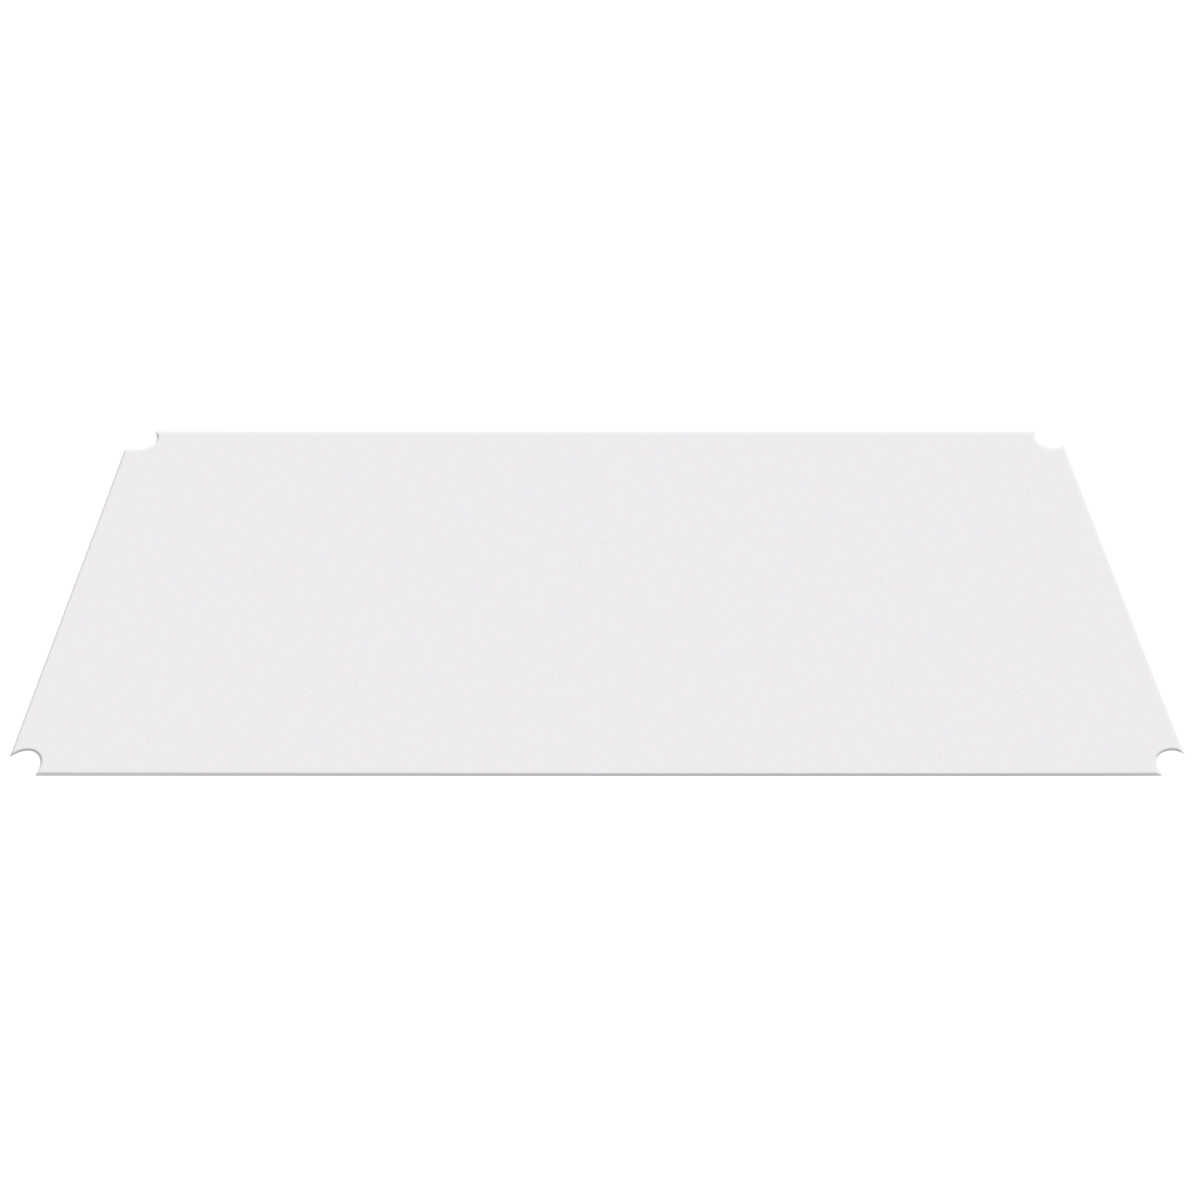 12 x 24 Shelf Liner, Clear (AW1224LINER).  This item sold in carton quantities of 4.